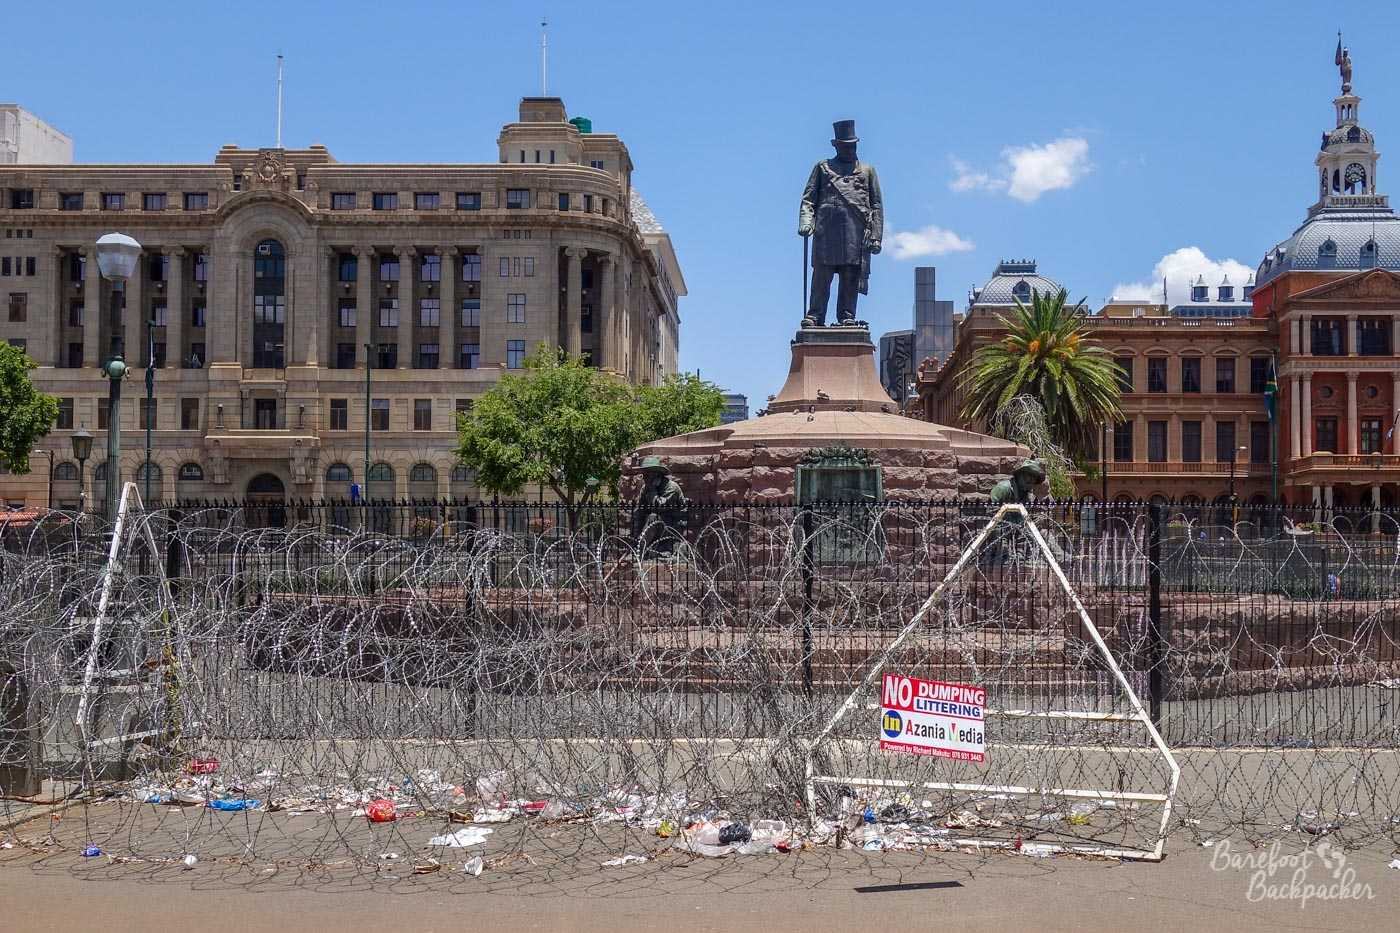 The Paul Kruger statue in the centre of Pretoria, surrounded by barbed wire and lots of litter